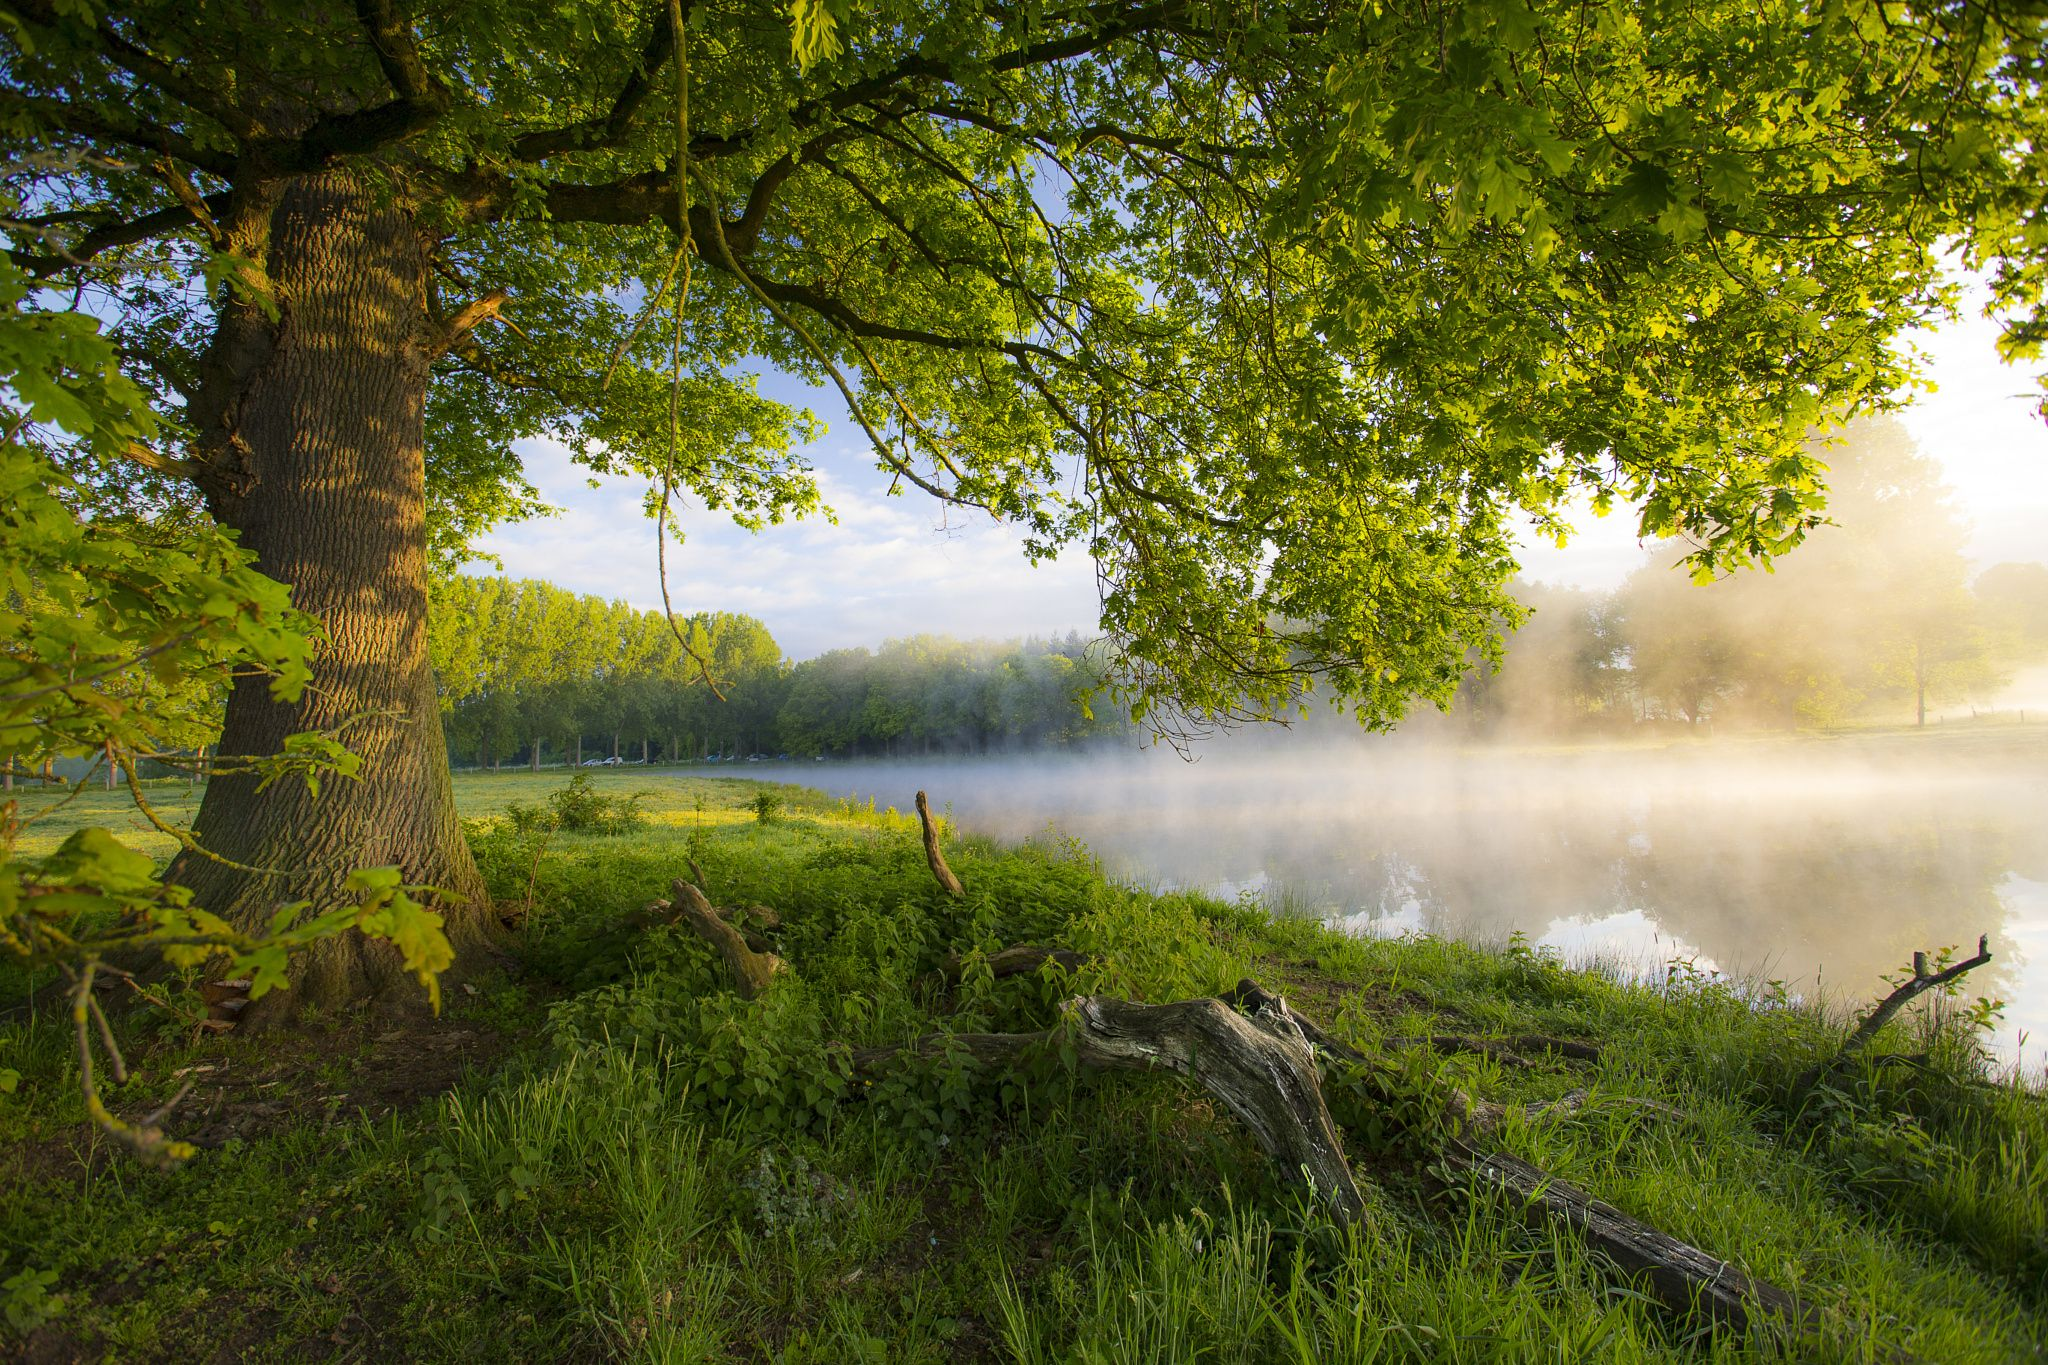 Morning tree by paul poels on 500px